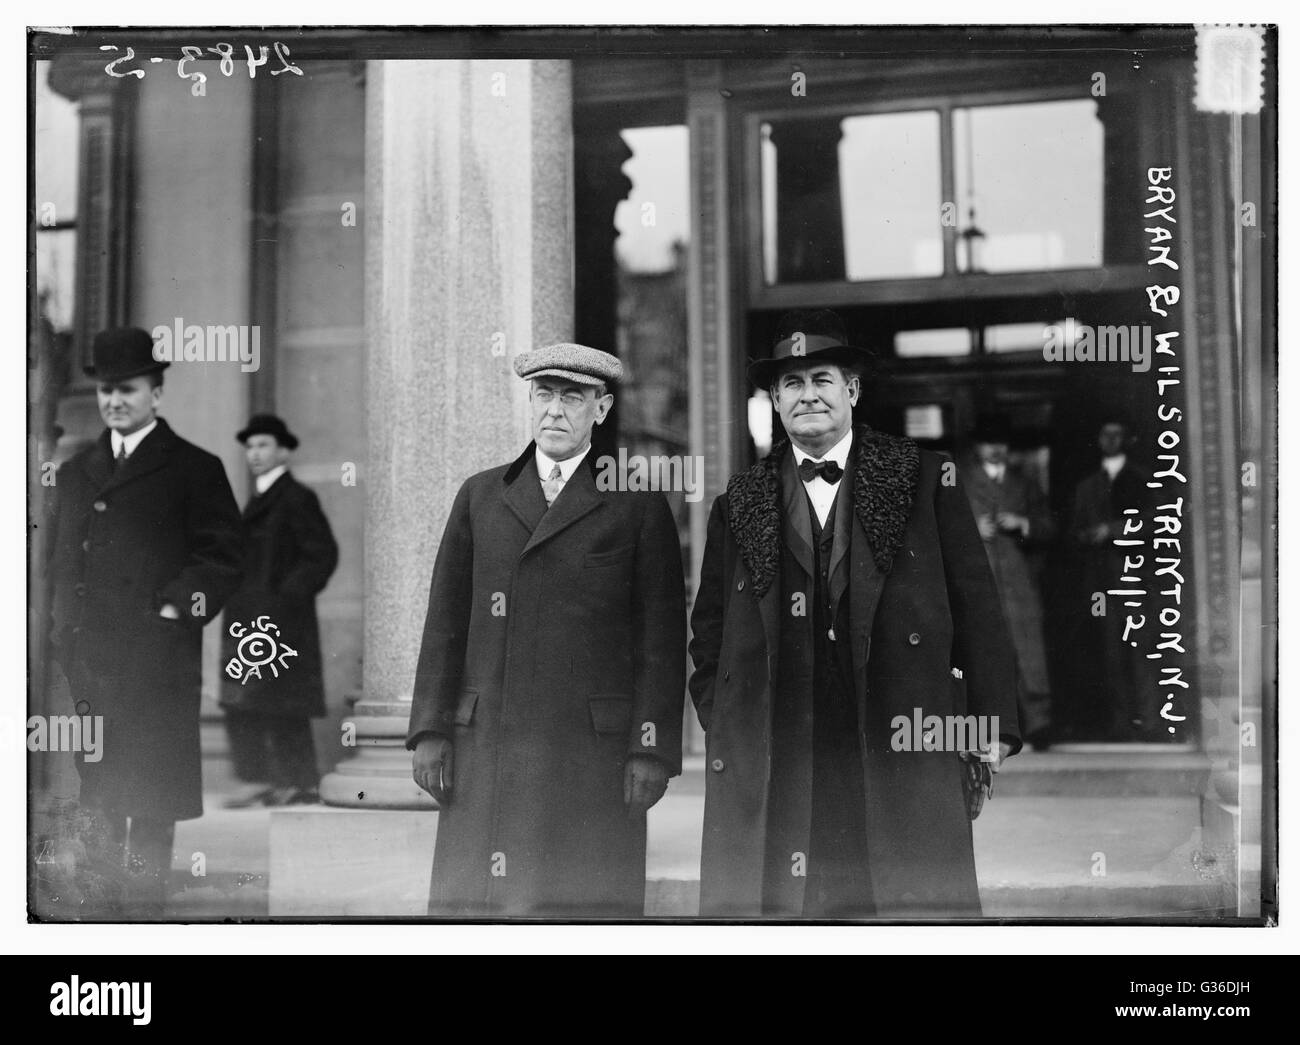 Democratic President-elect Woodrow Wilson and prominent Democrat William Jennings Bryan pose together in Trenton, - Stock Image